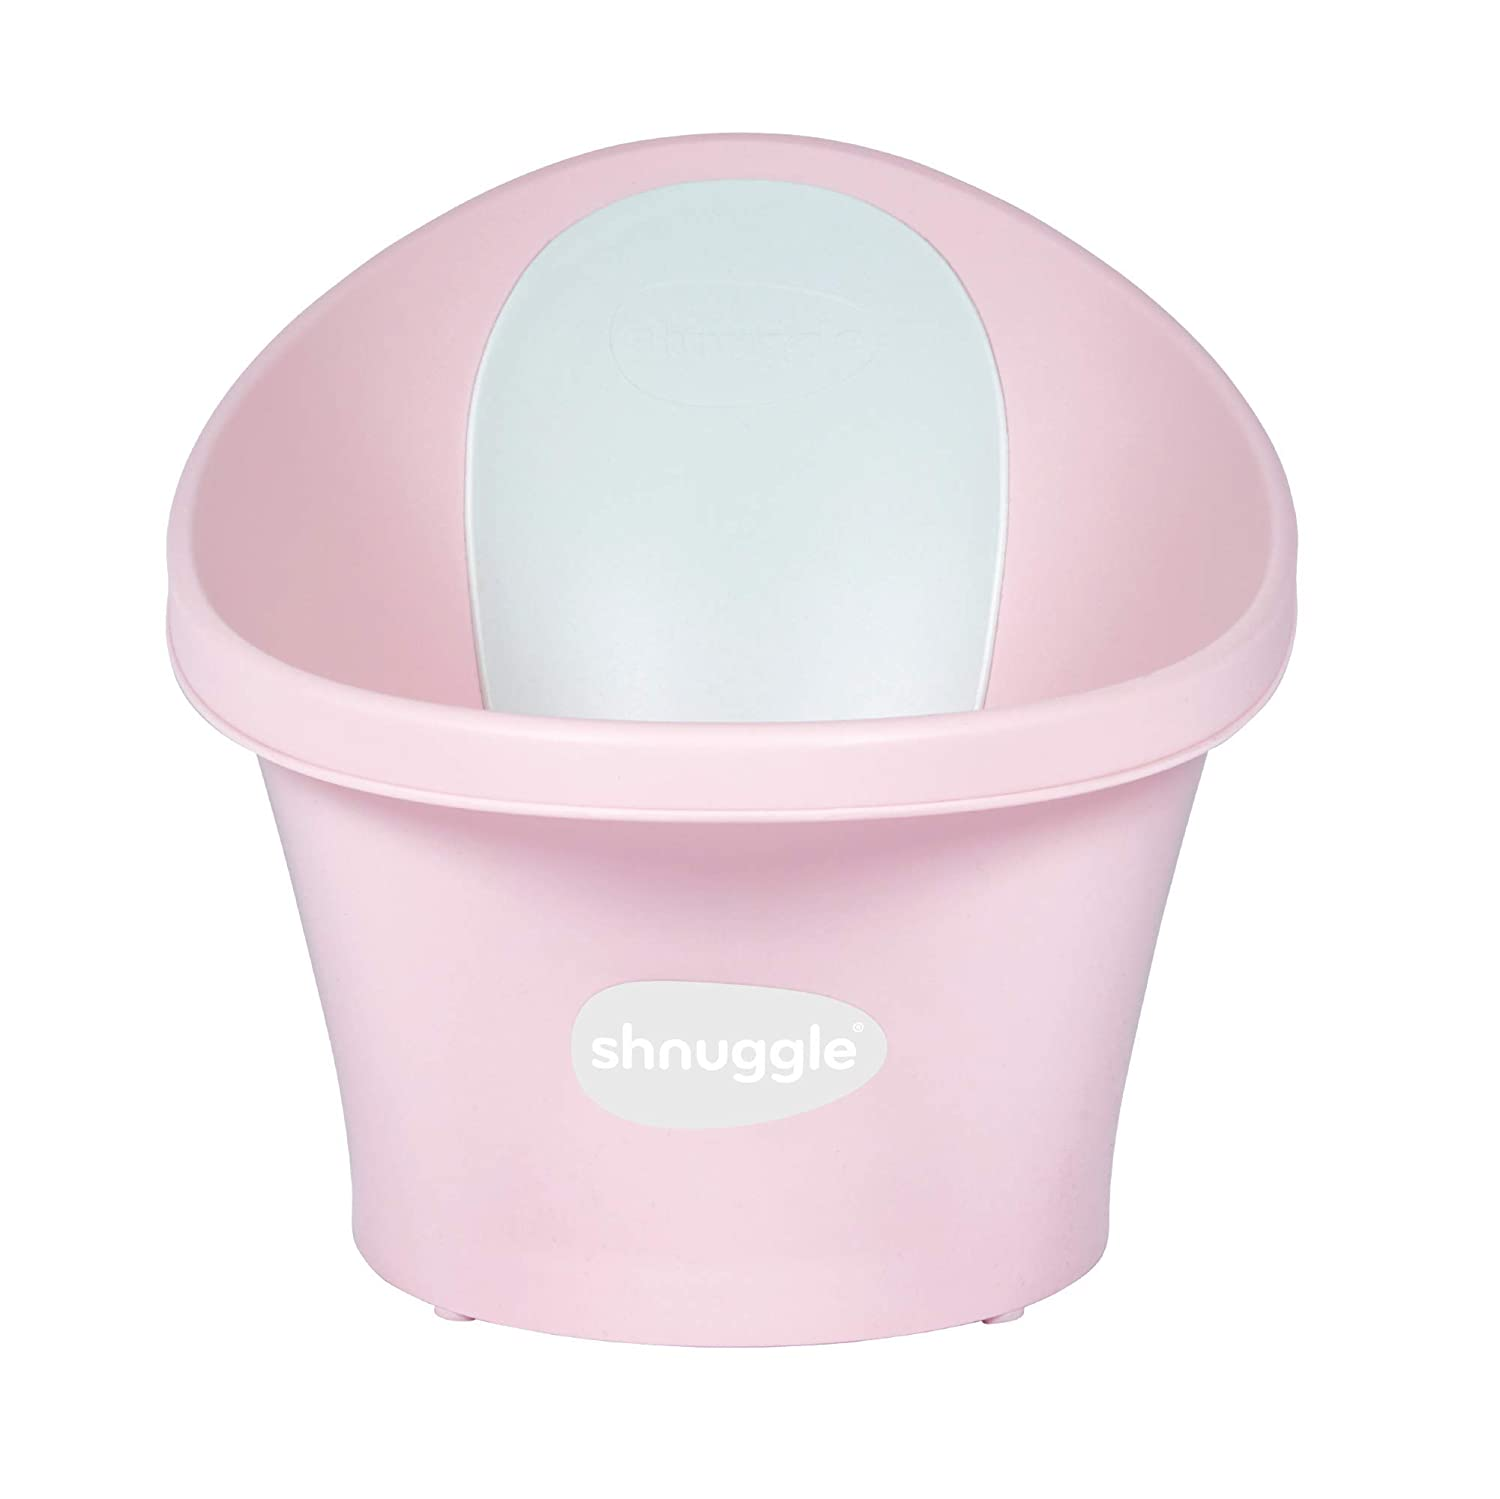 BEABA by Shnuggle Baby Bath Tub with Bum Bump Support and Cozy Foam Back Rest, Includes Handy Plug, 0-12 Months (Rose)